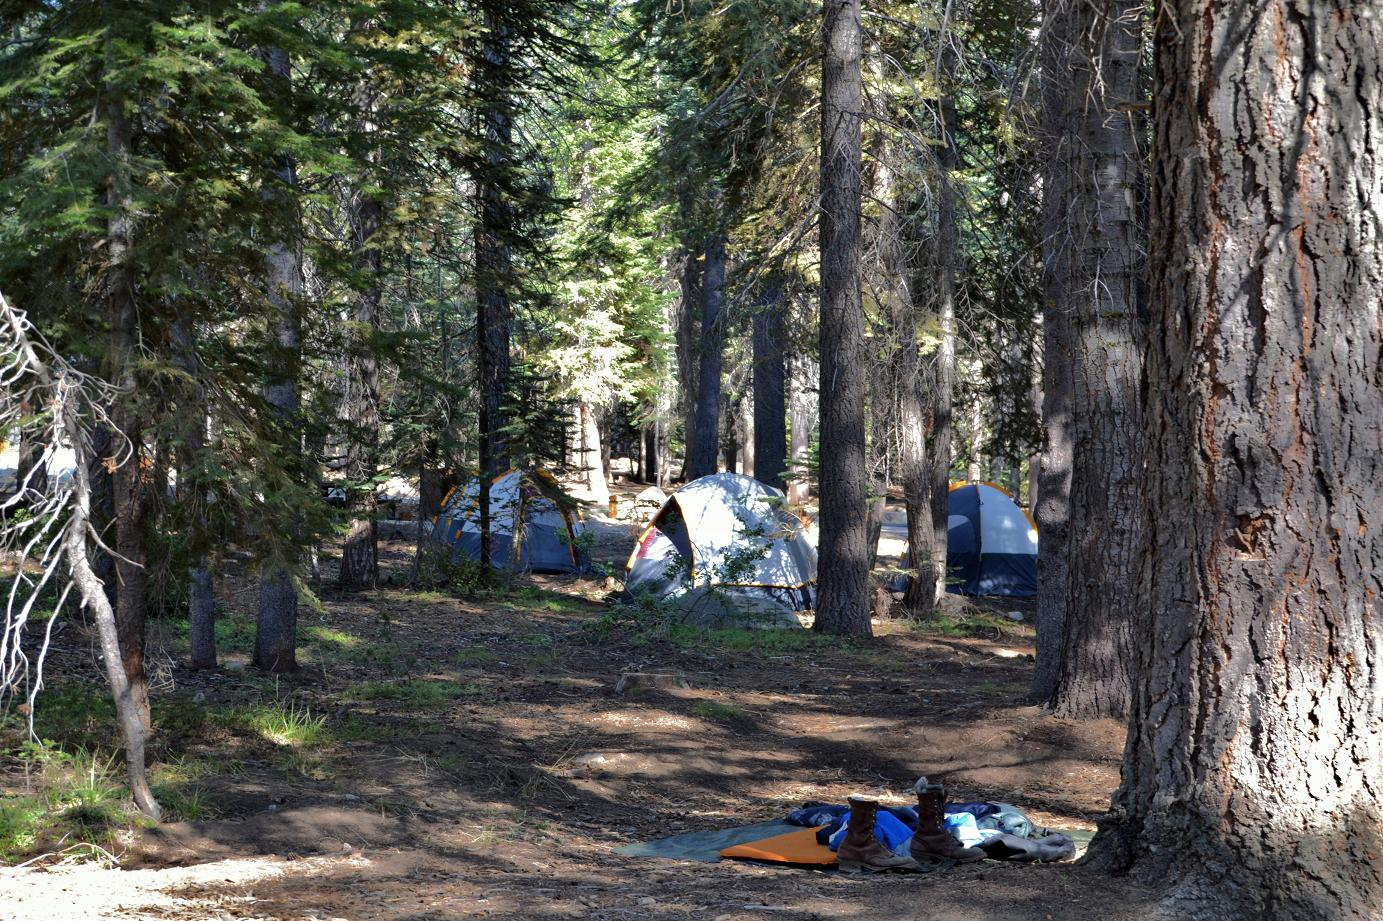 Tents in Rancheria Campground